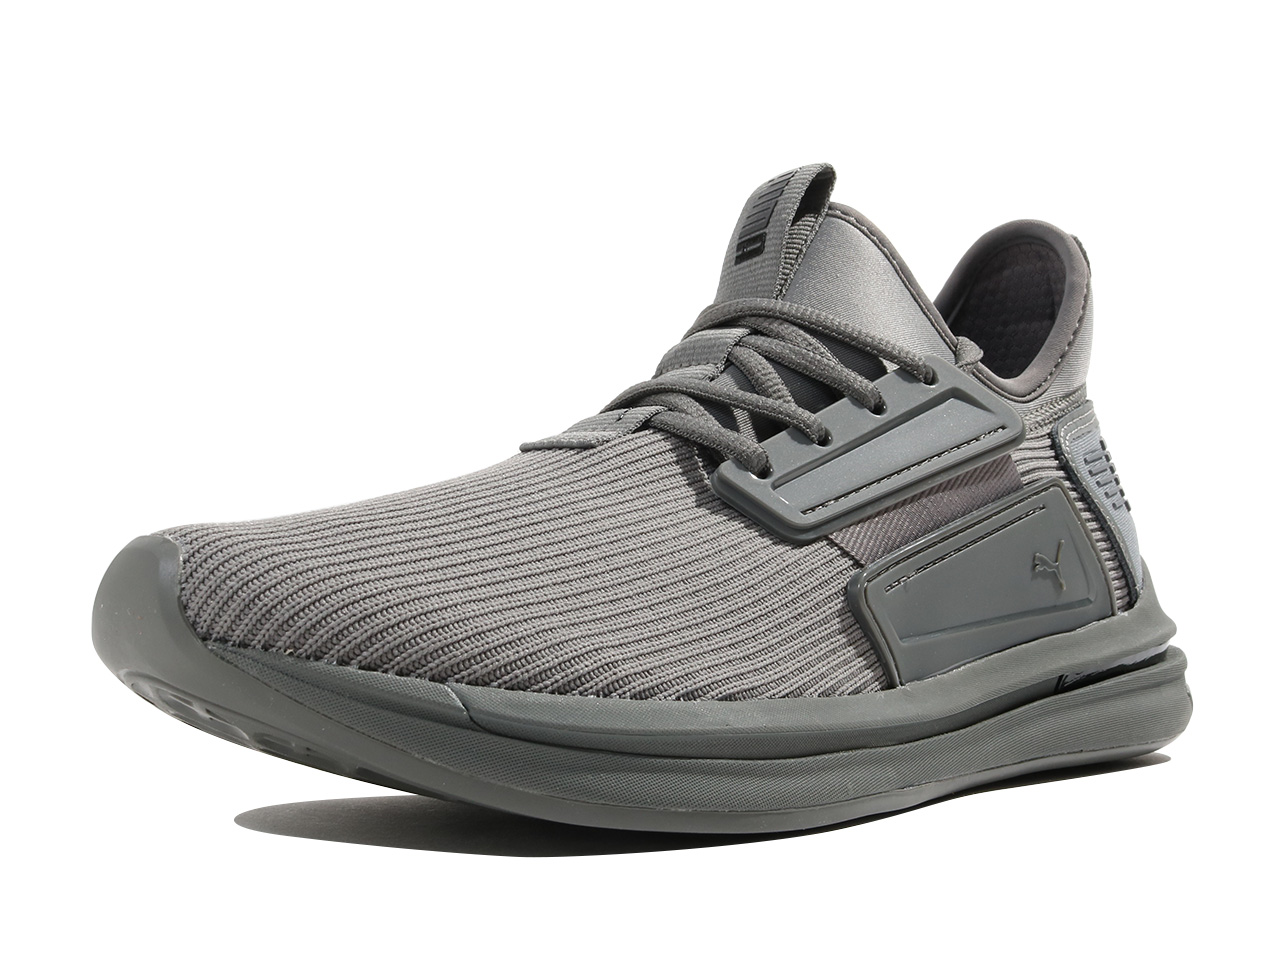 puma_ignite_limitless_sr_190482_04